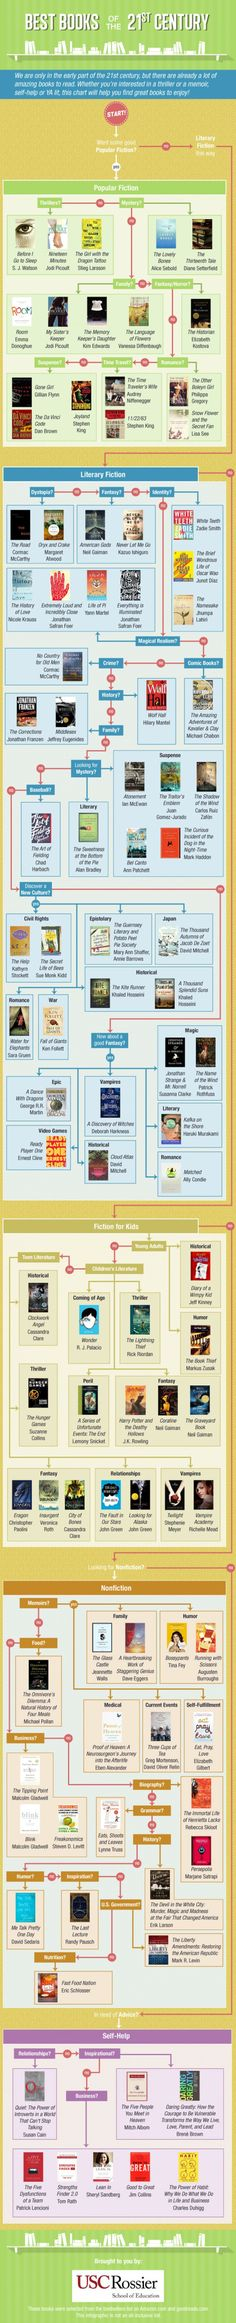 The Best Books of the 21st Century (Infographic)